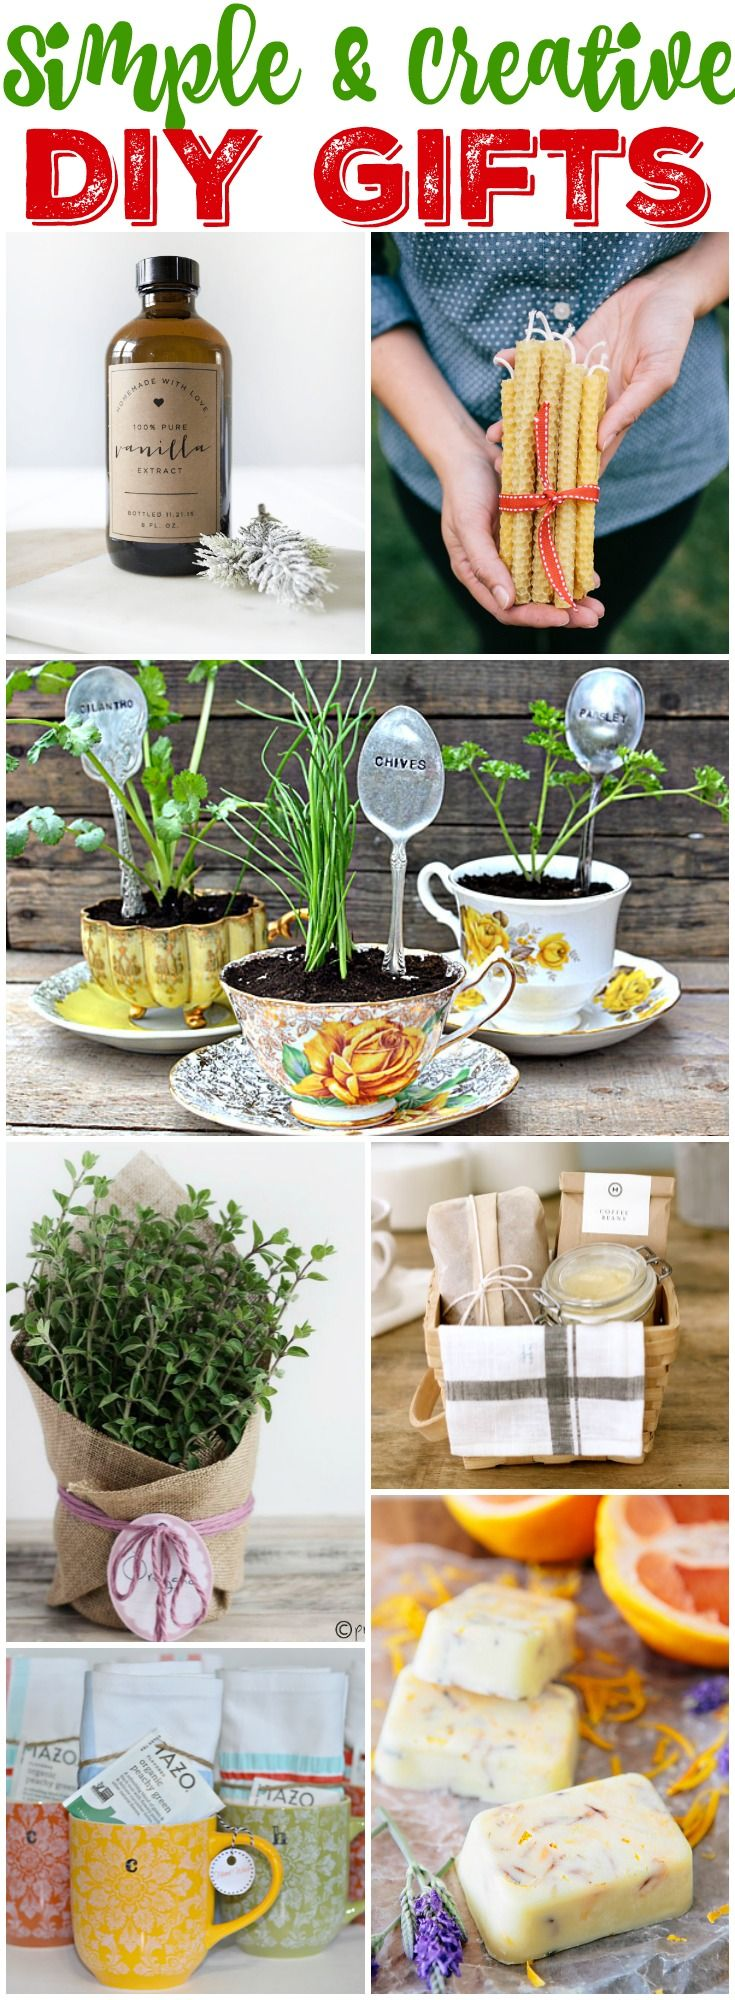 Simple & Creative DIY Gift Ideas perfect for teacher gifts, hostess gifts, colleague gifts at thehappyhousie.com